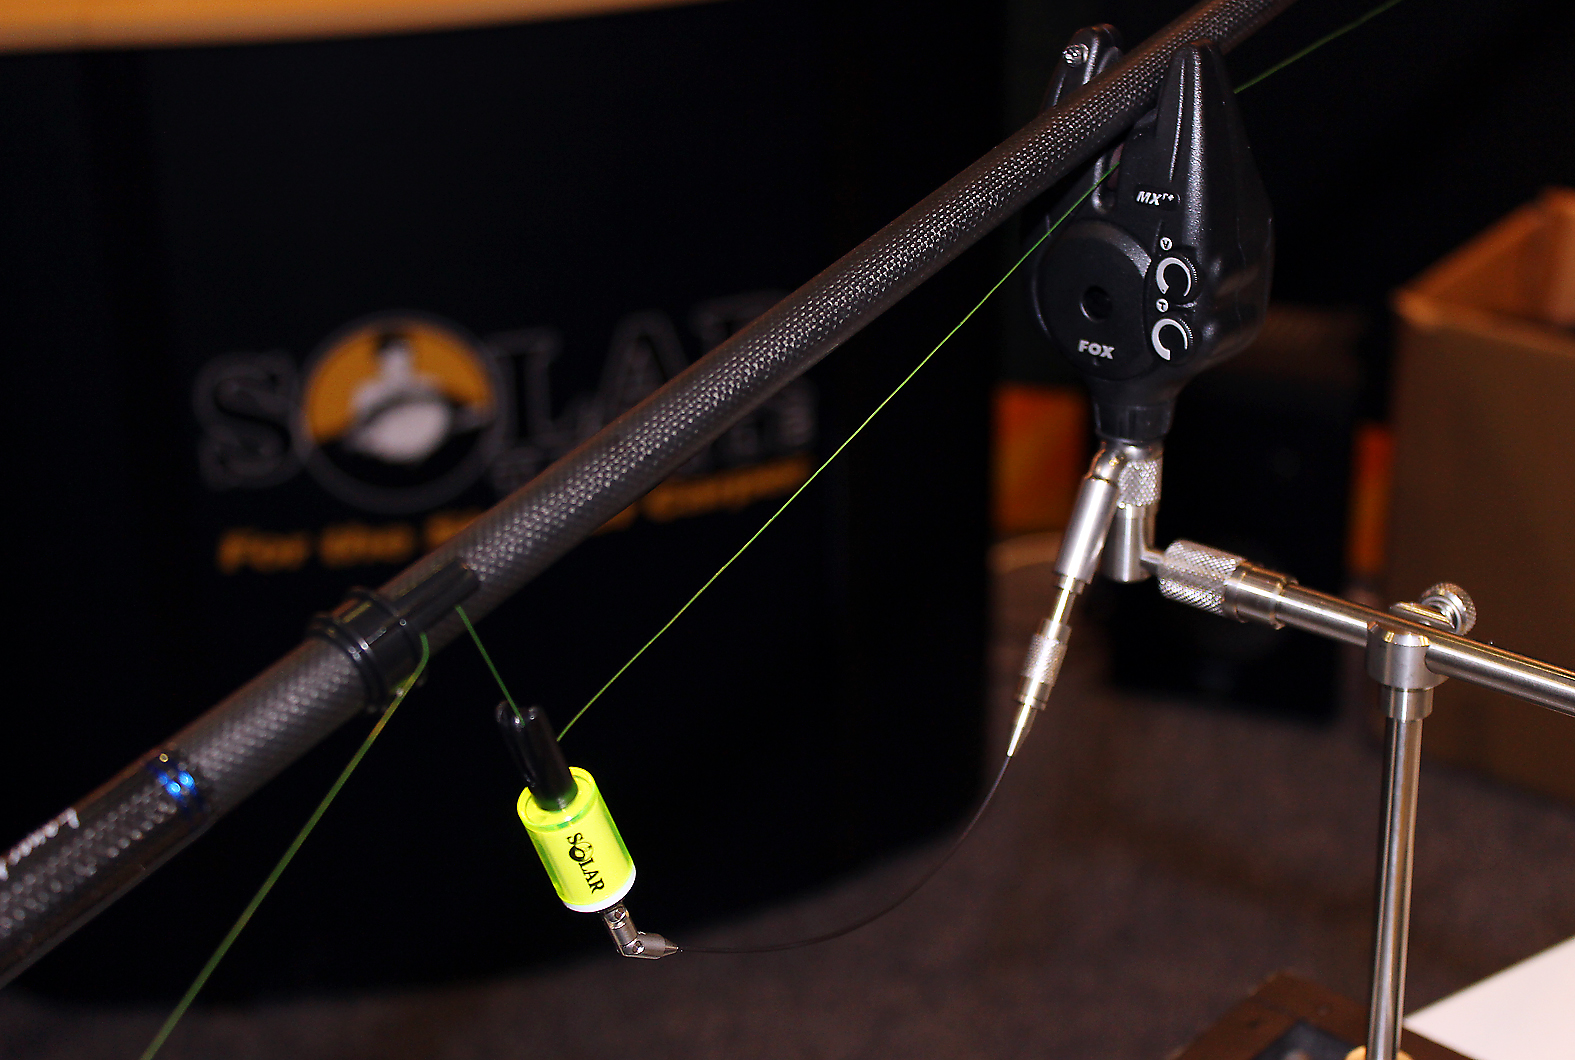 Stunning, the new Titanium Indicator System from Solar Tackle